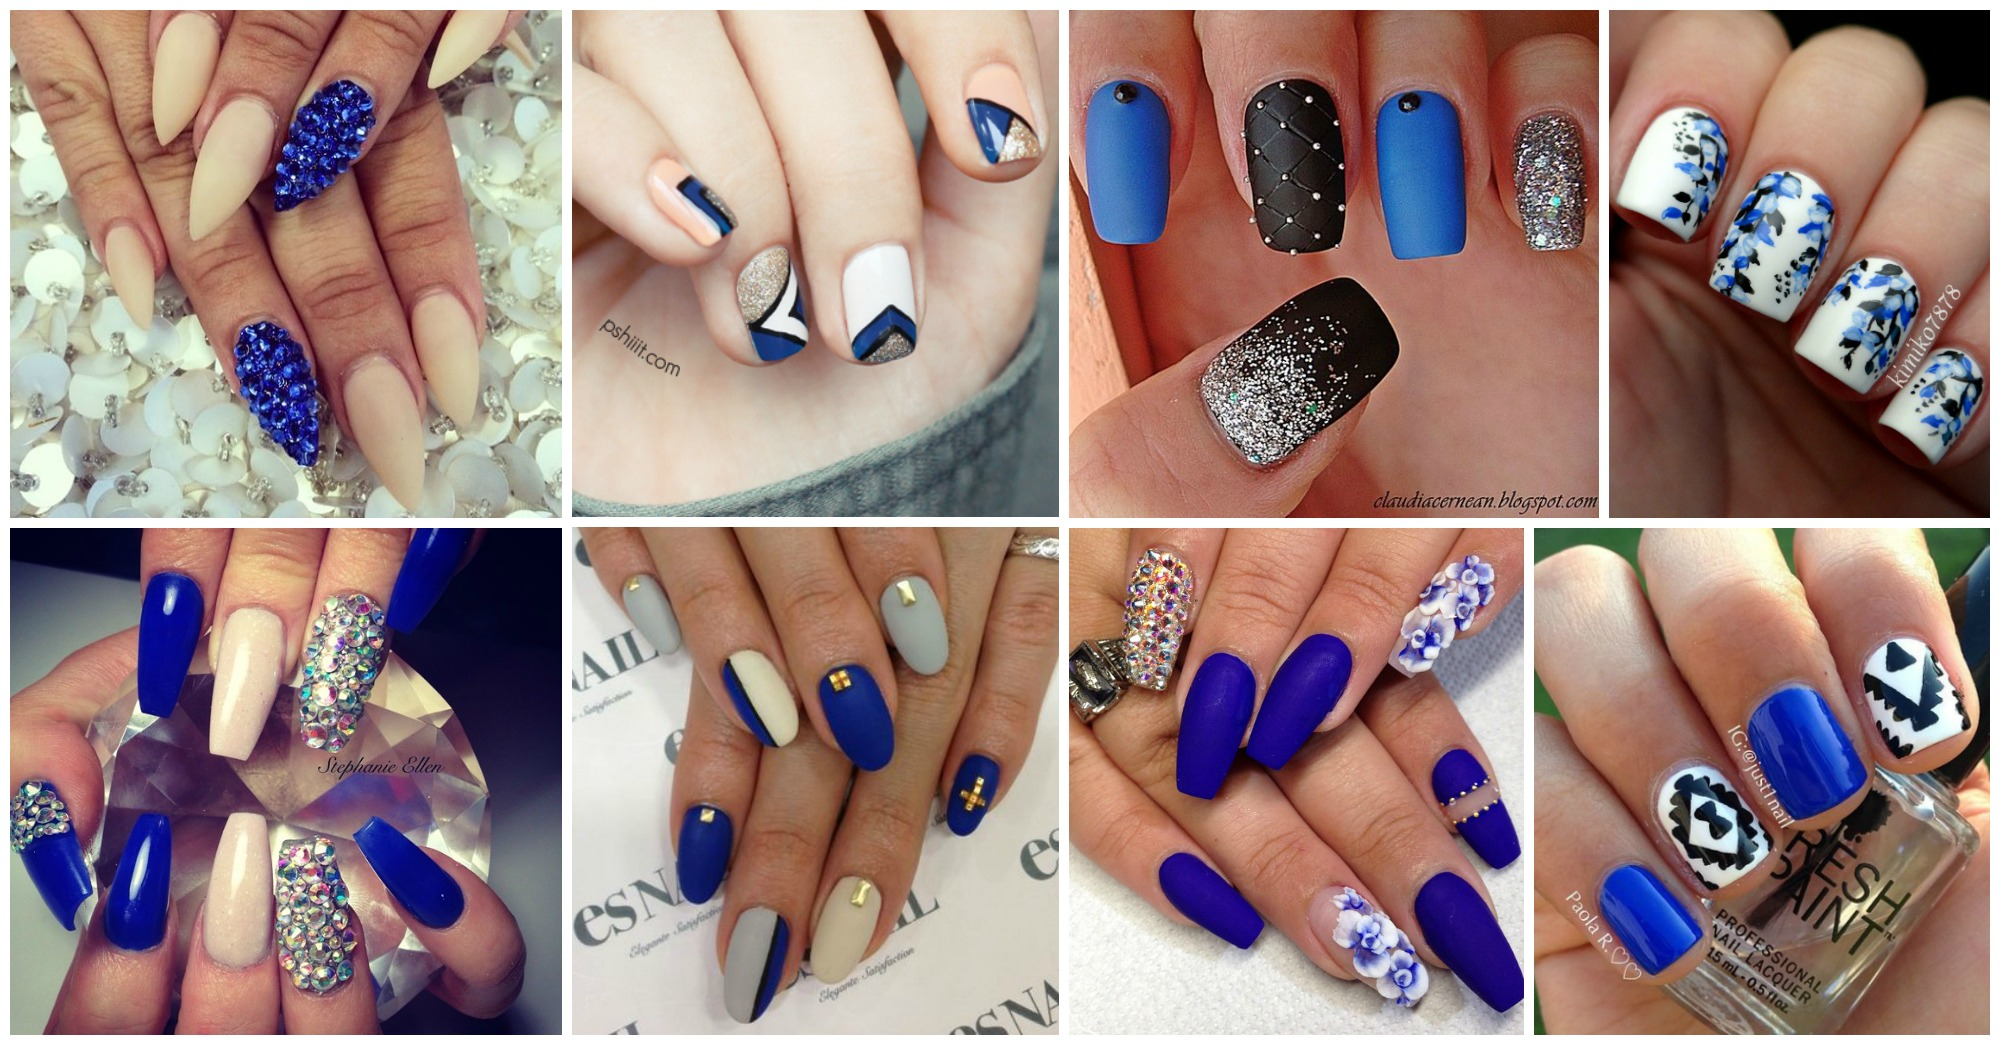 17 Lovely Blue Nail Designs That Will Leave You Speechless